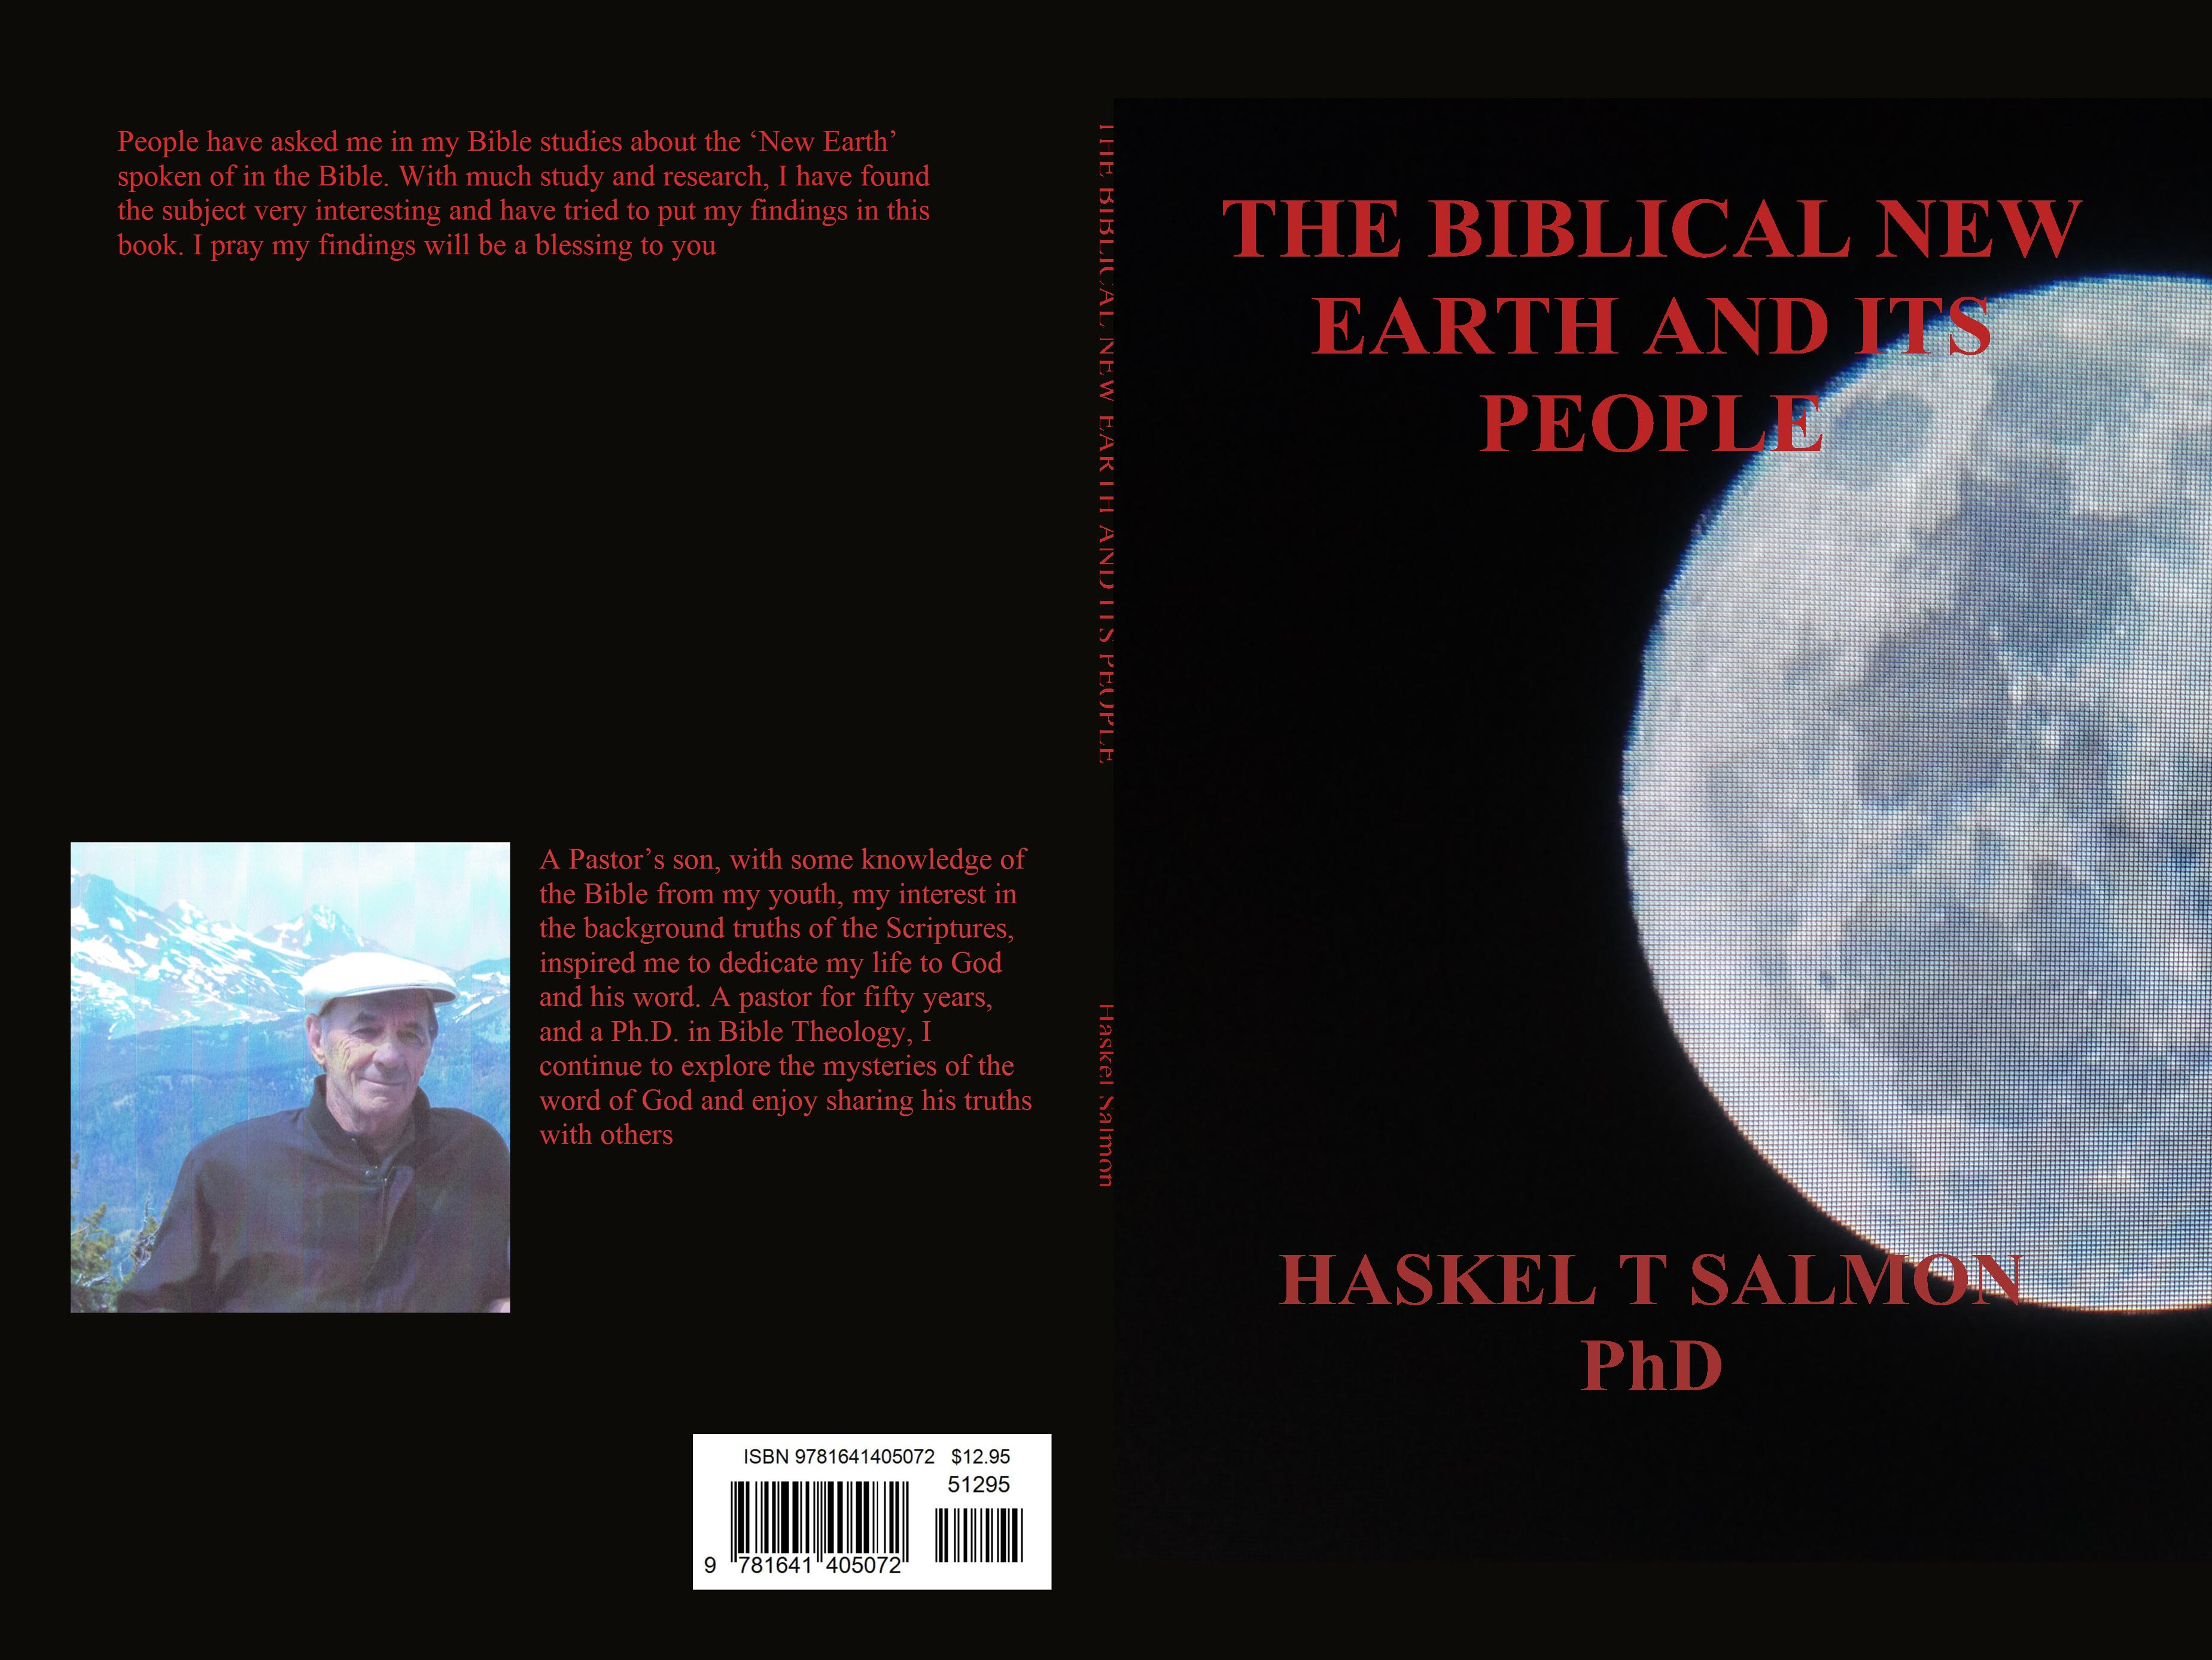 THE BIBLICAL NEW EARTH AND ITS PEOPLE cover image